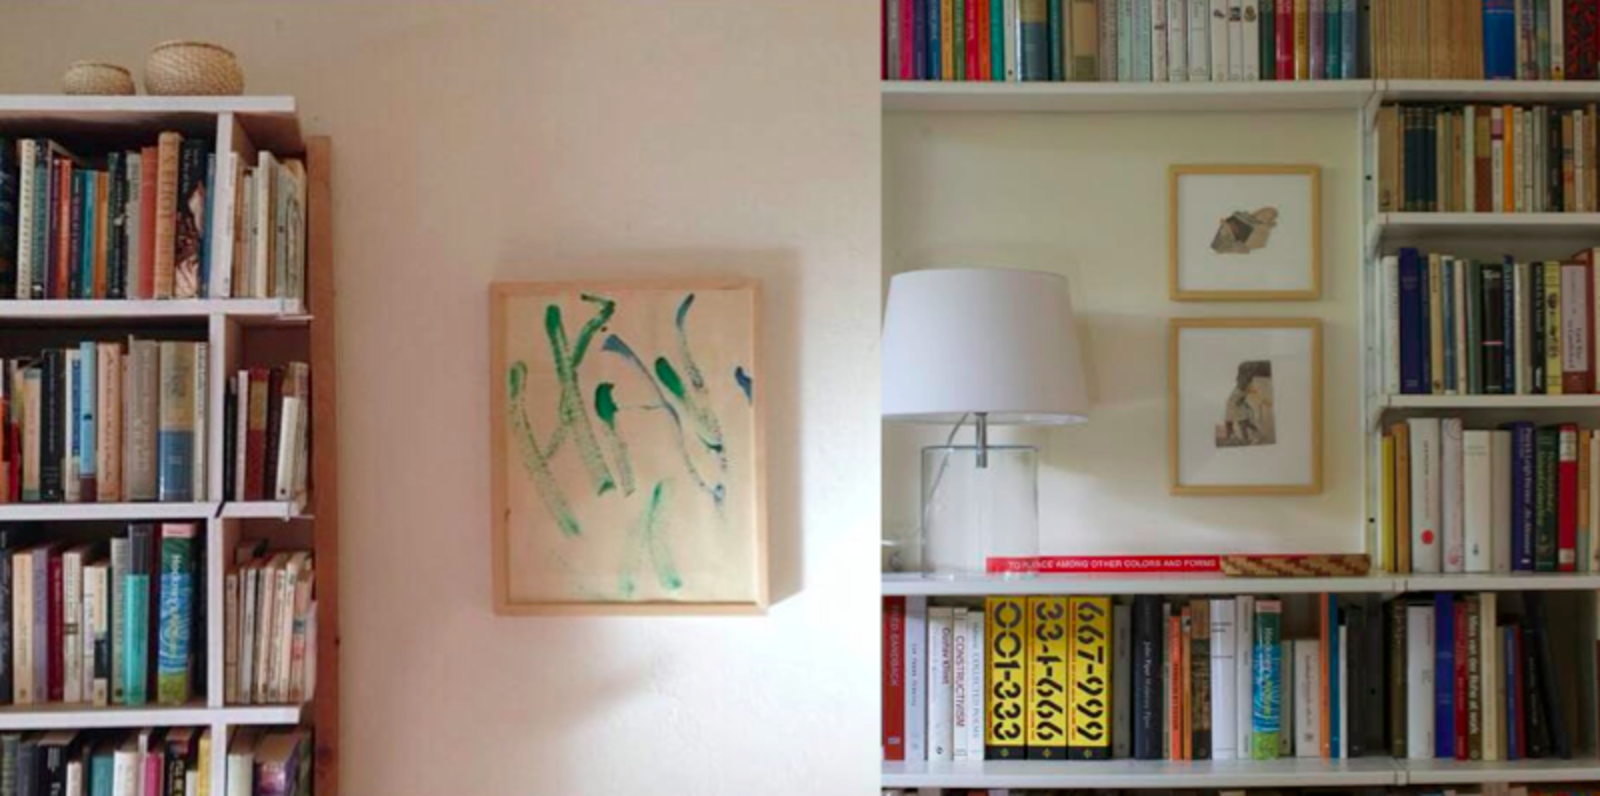 Heywood lives in Oakland with his wife, two small children, and lots of books. The young boys provide the abstract paintings that grace the walls.  Photo 6 of 6 in A Bibliophile Shares His Book Storage Secrets